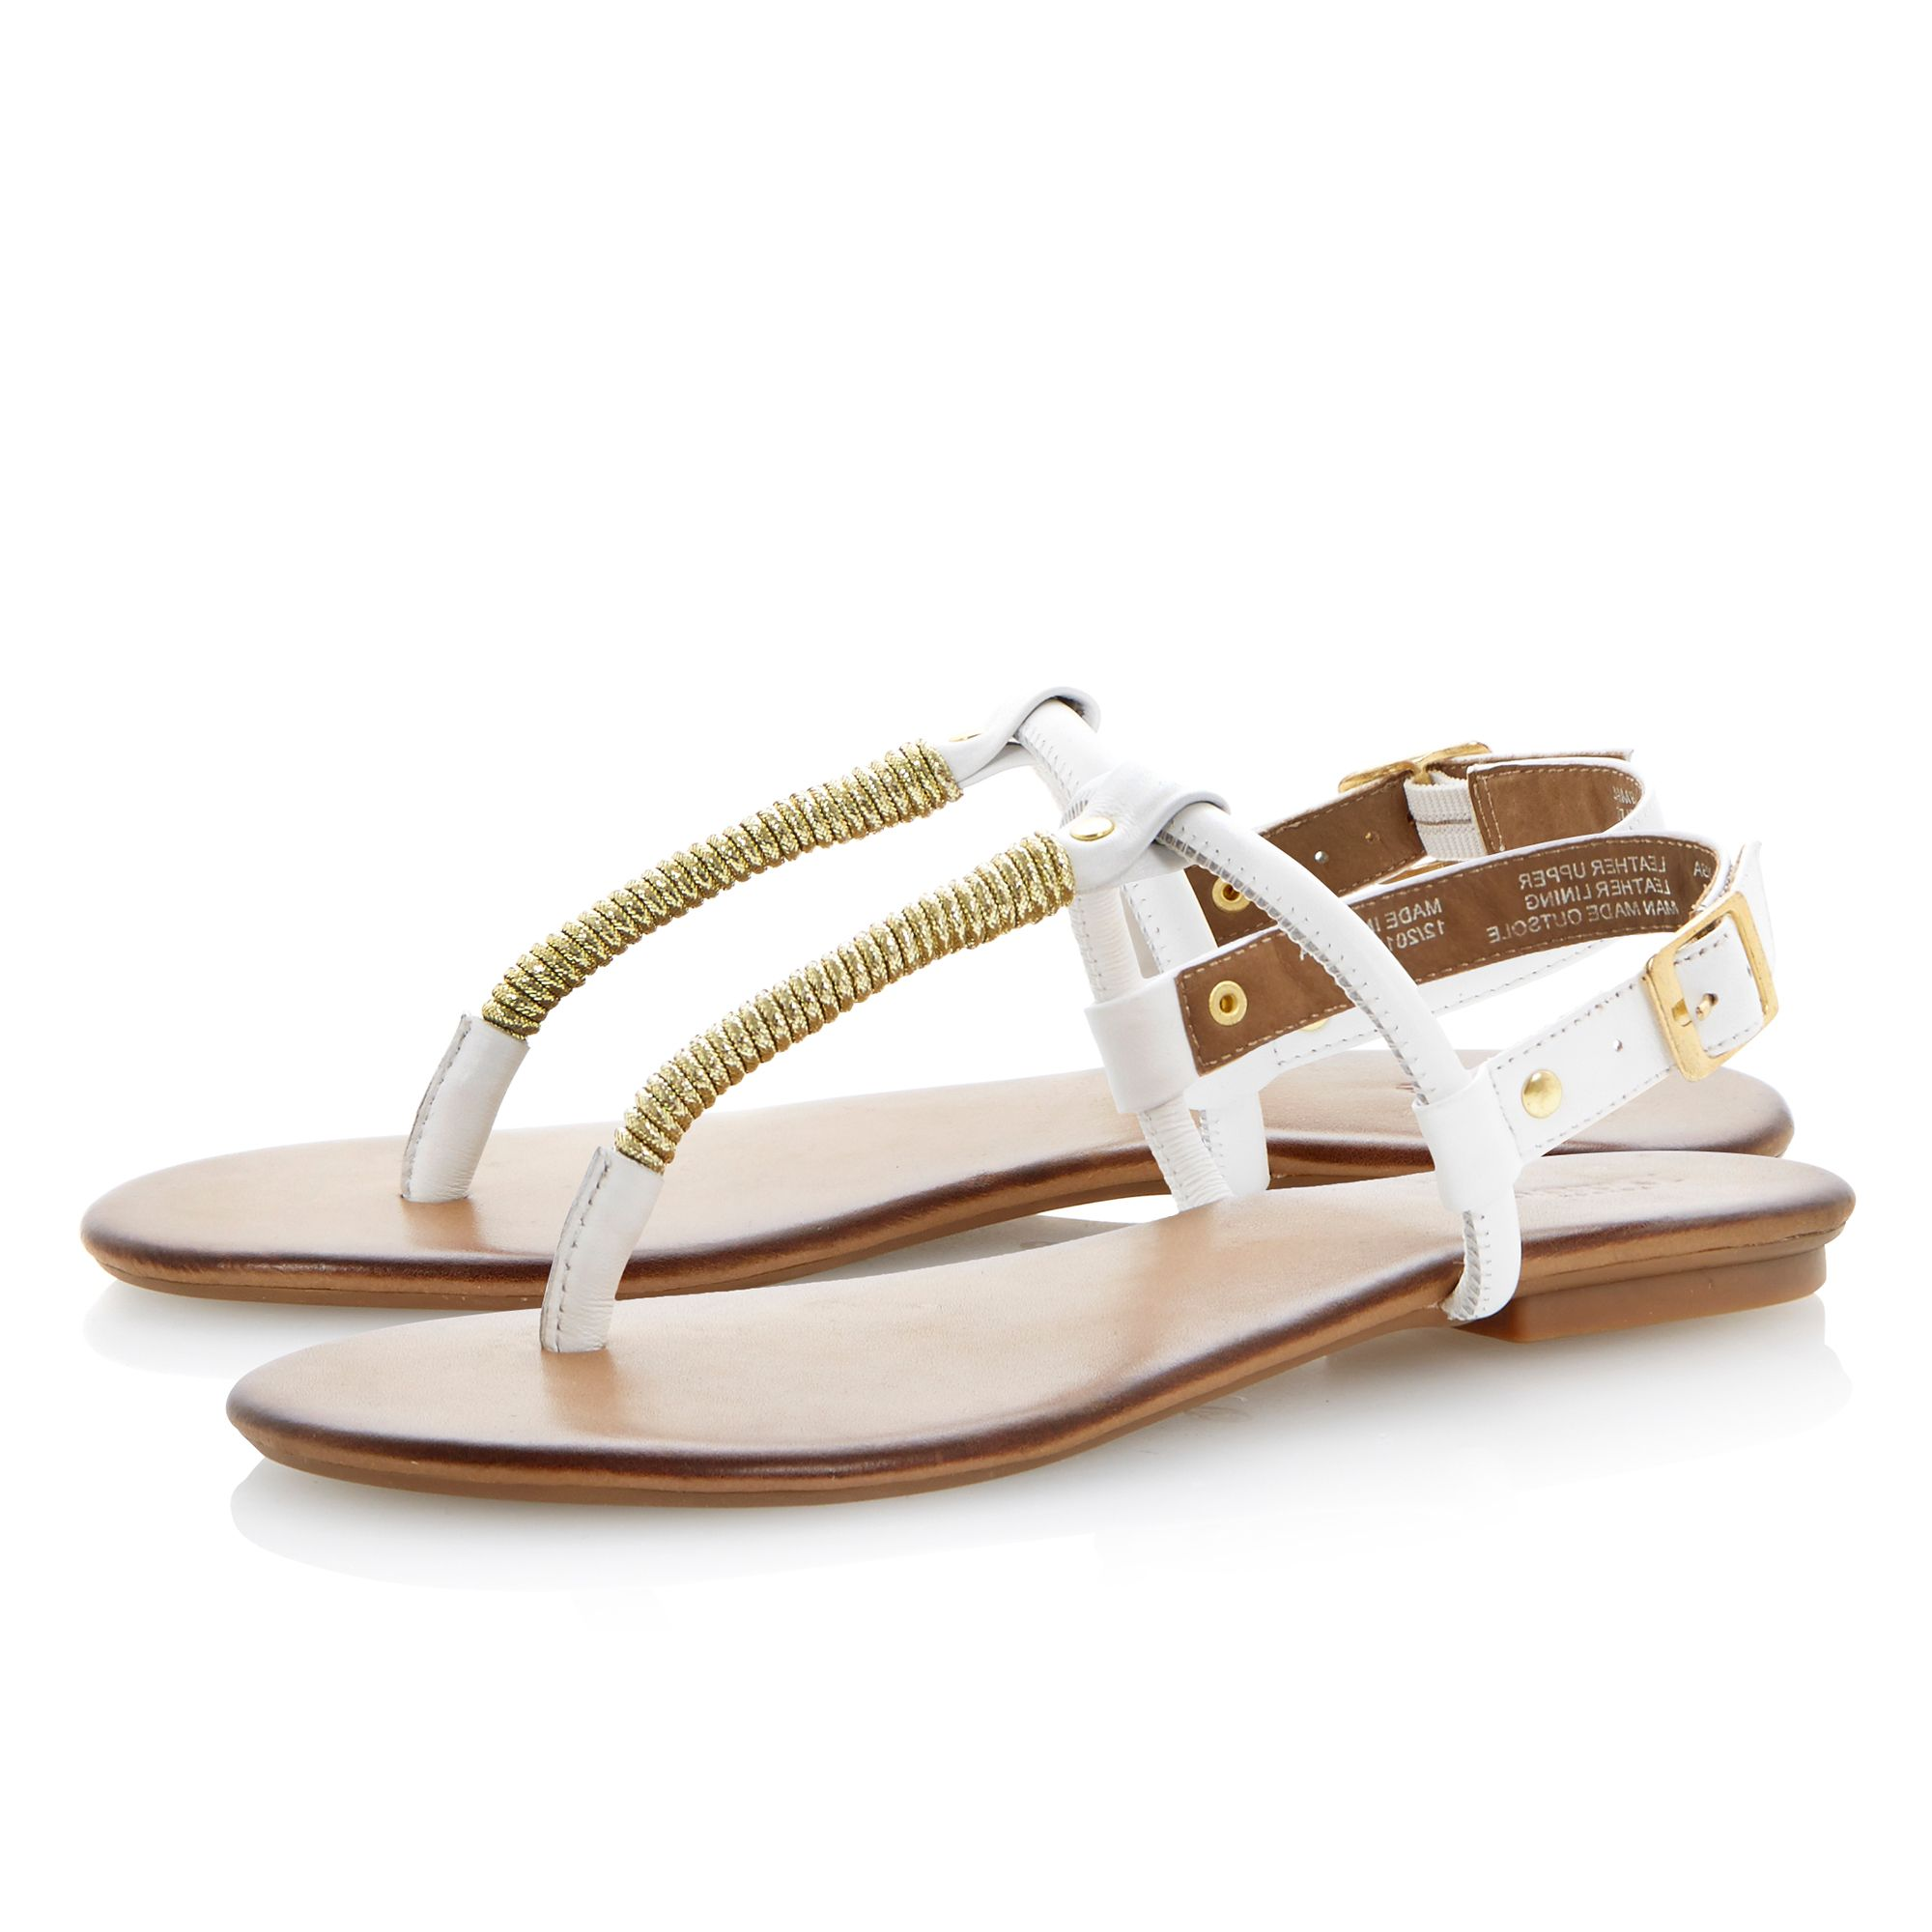 Jamba buckle leather flat sandals